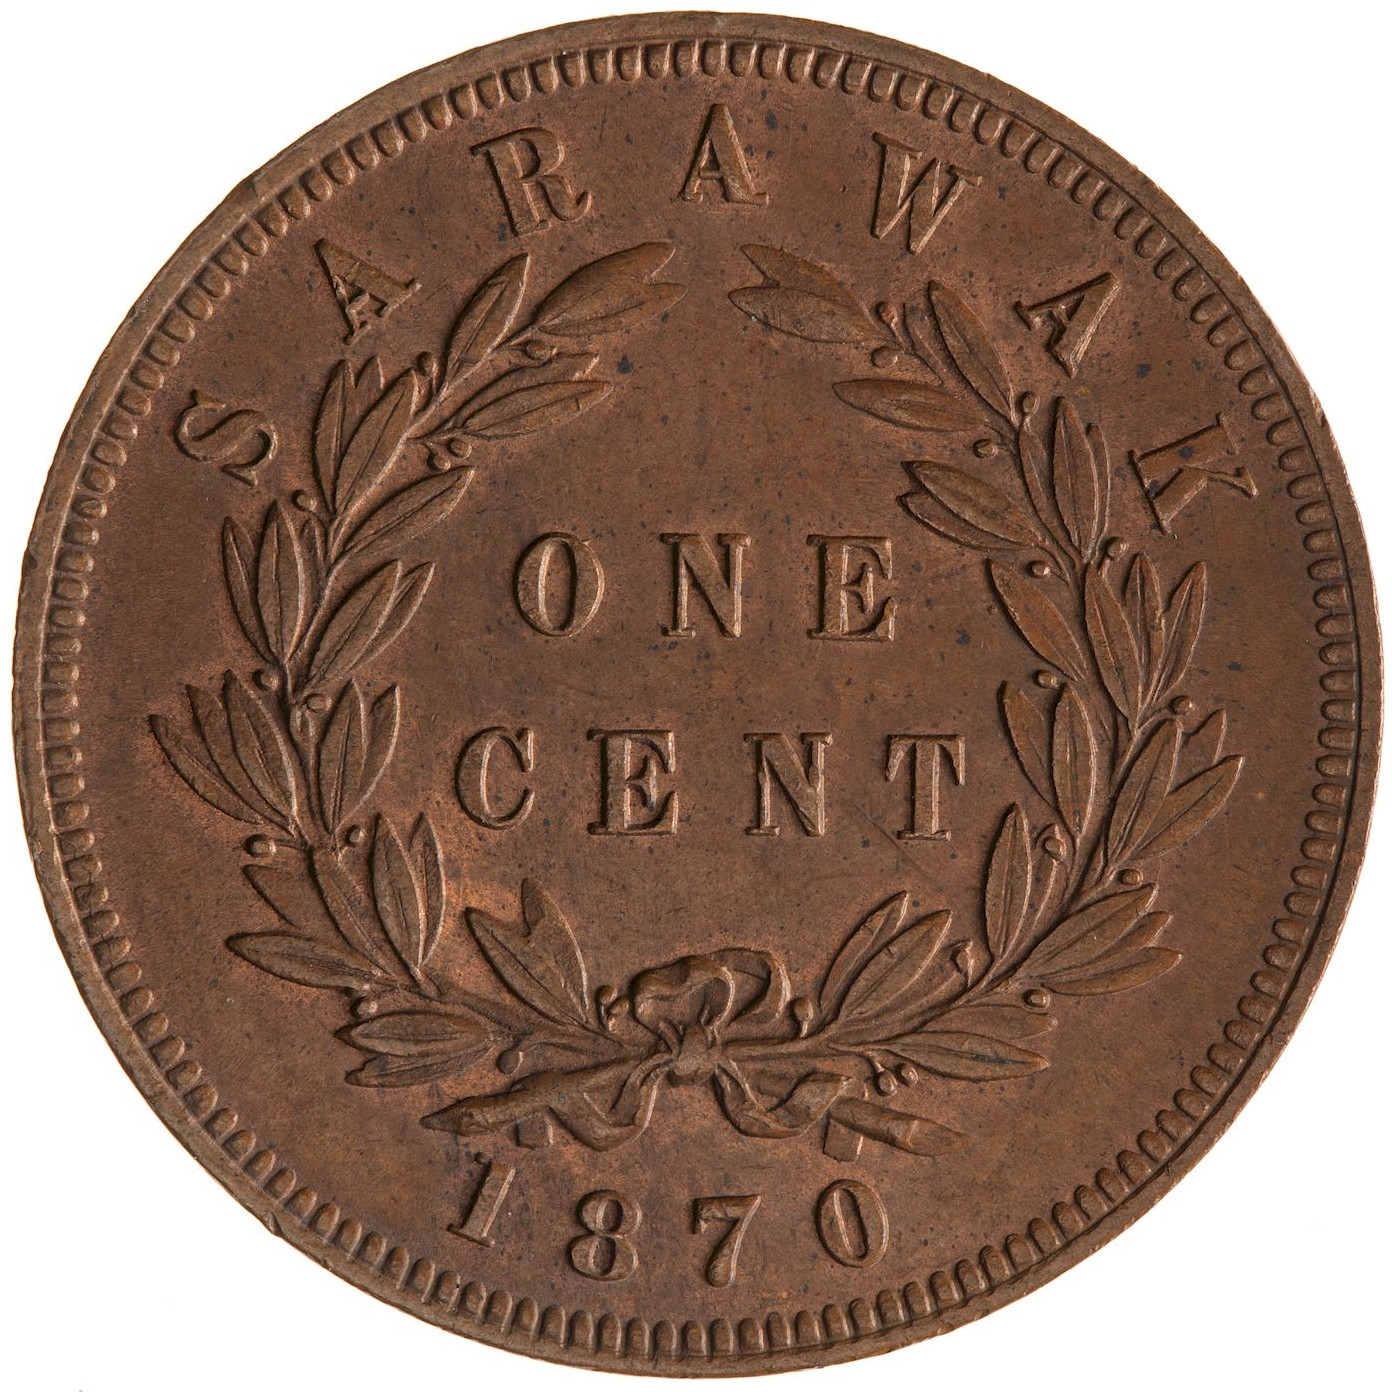 One Cent (Copper): Photo Coin - 1 Cent, Sarawak, 1870